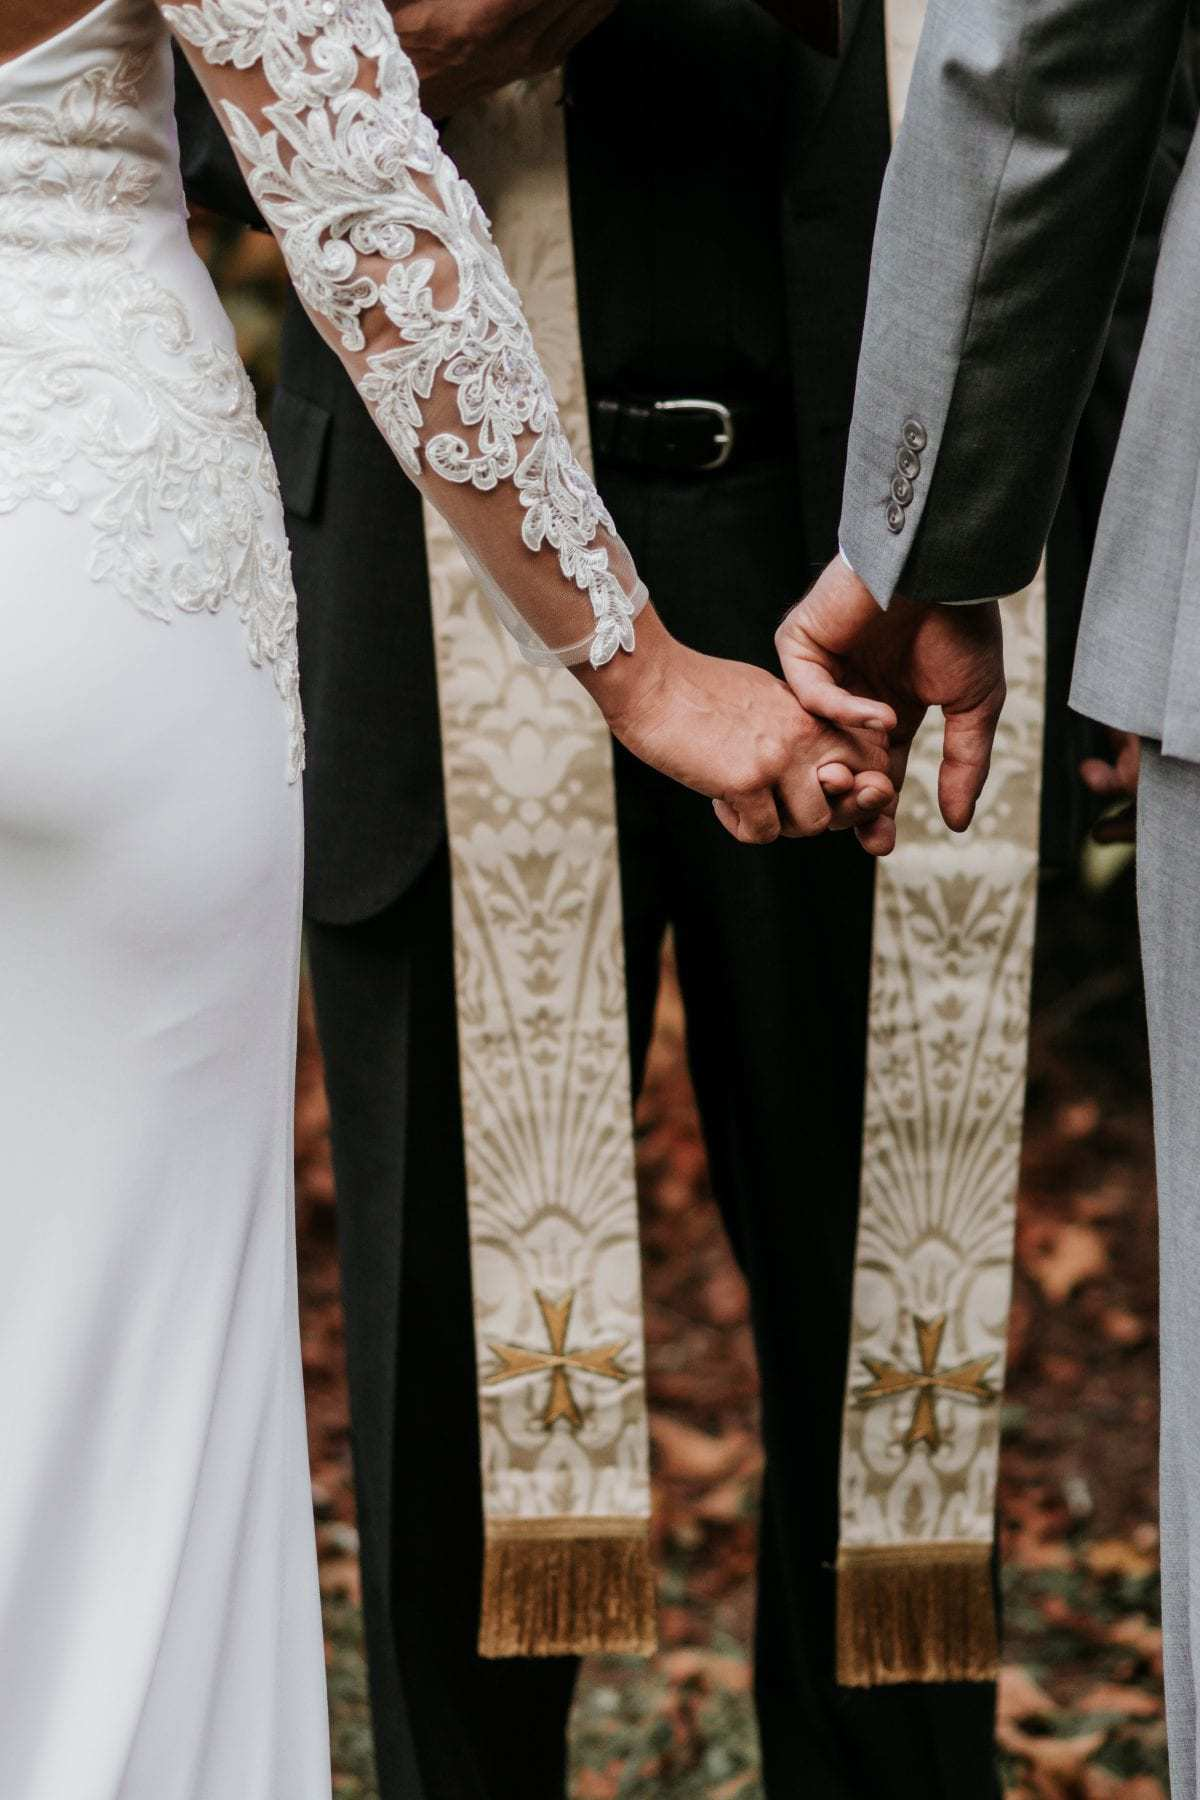 Interfaith Marriages